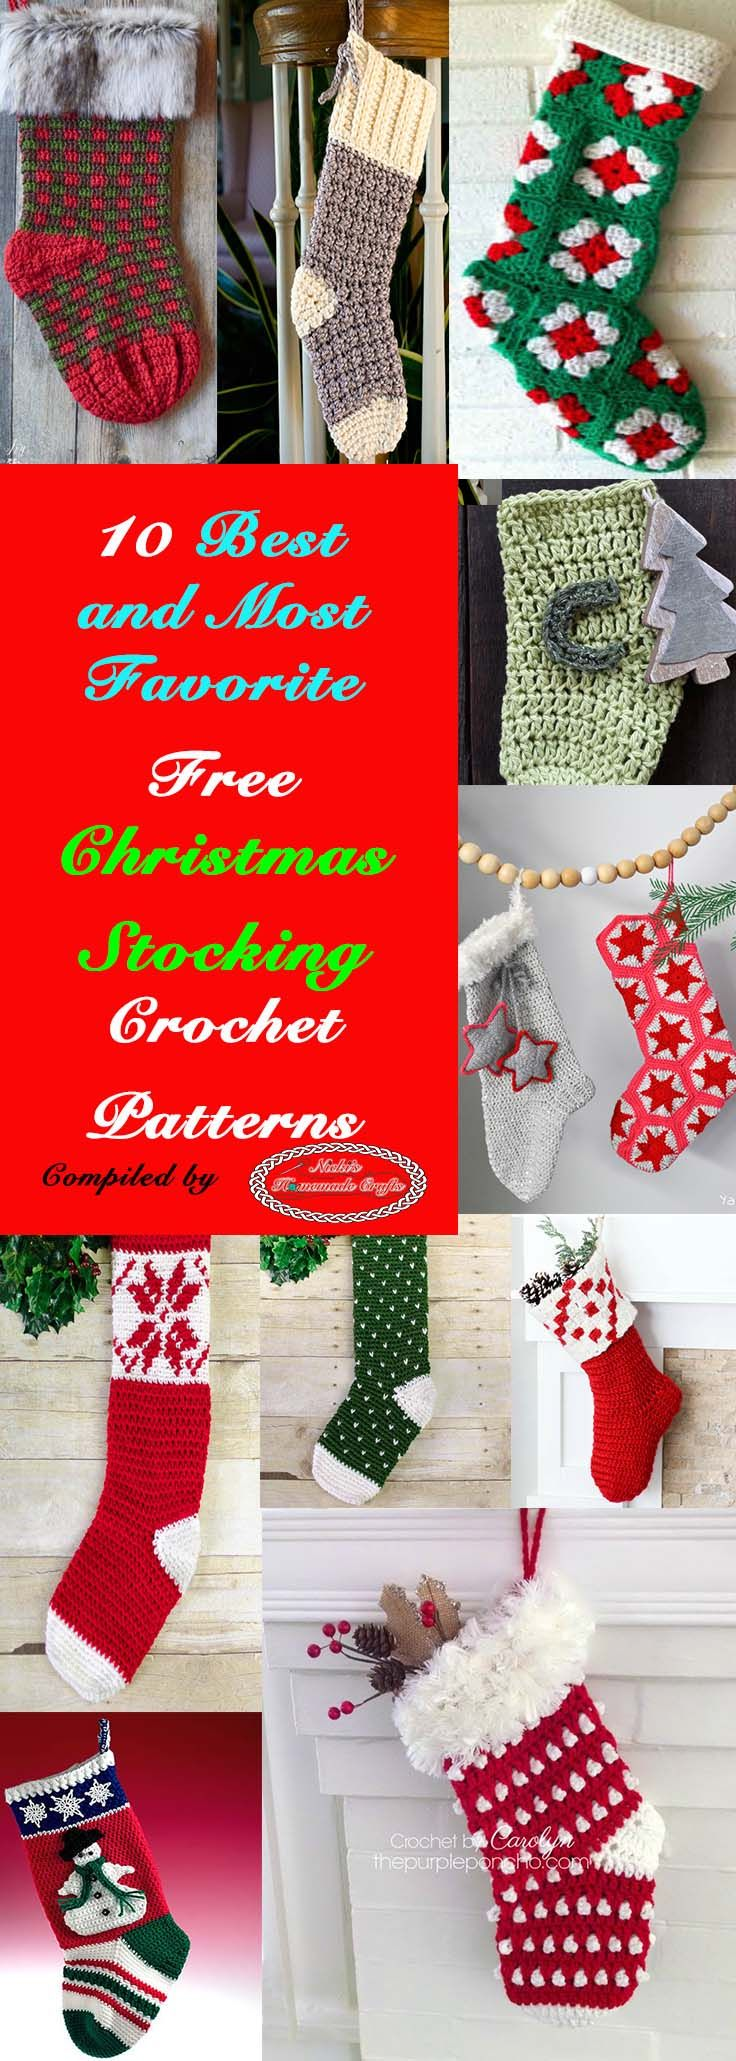 10 Best and Most favorite Christmas Stocking - Free Crochet Patterns  roundup at Nicki's Homemade Crafts